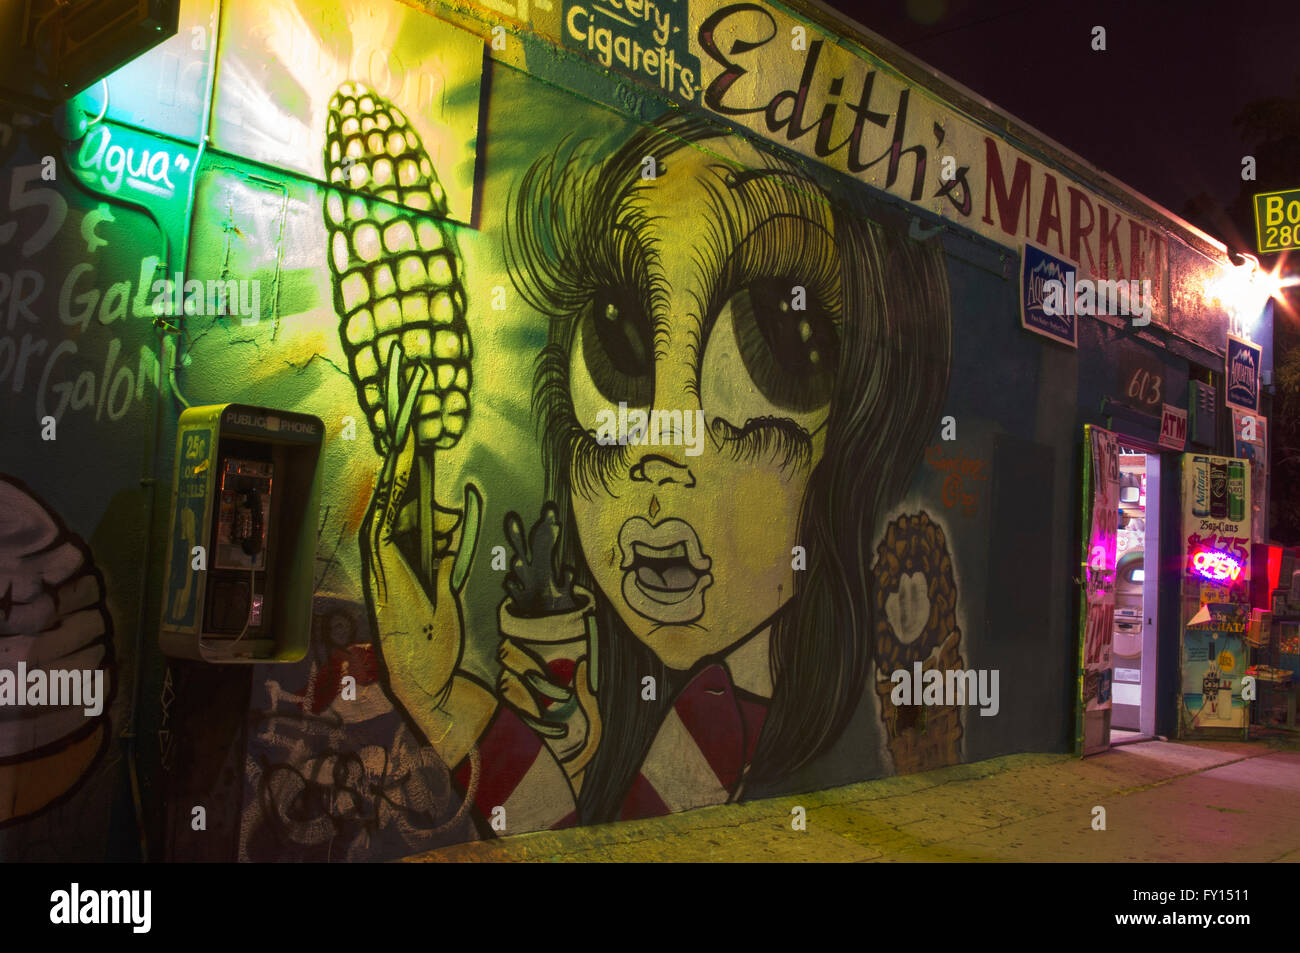 East L.A. girl, mural,gangster, night photo - Stock Image